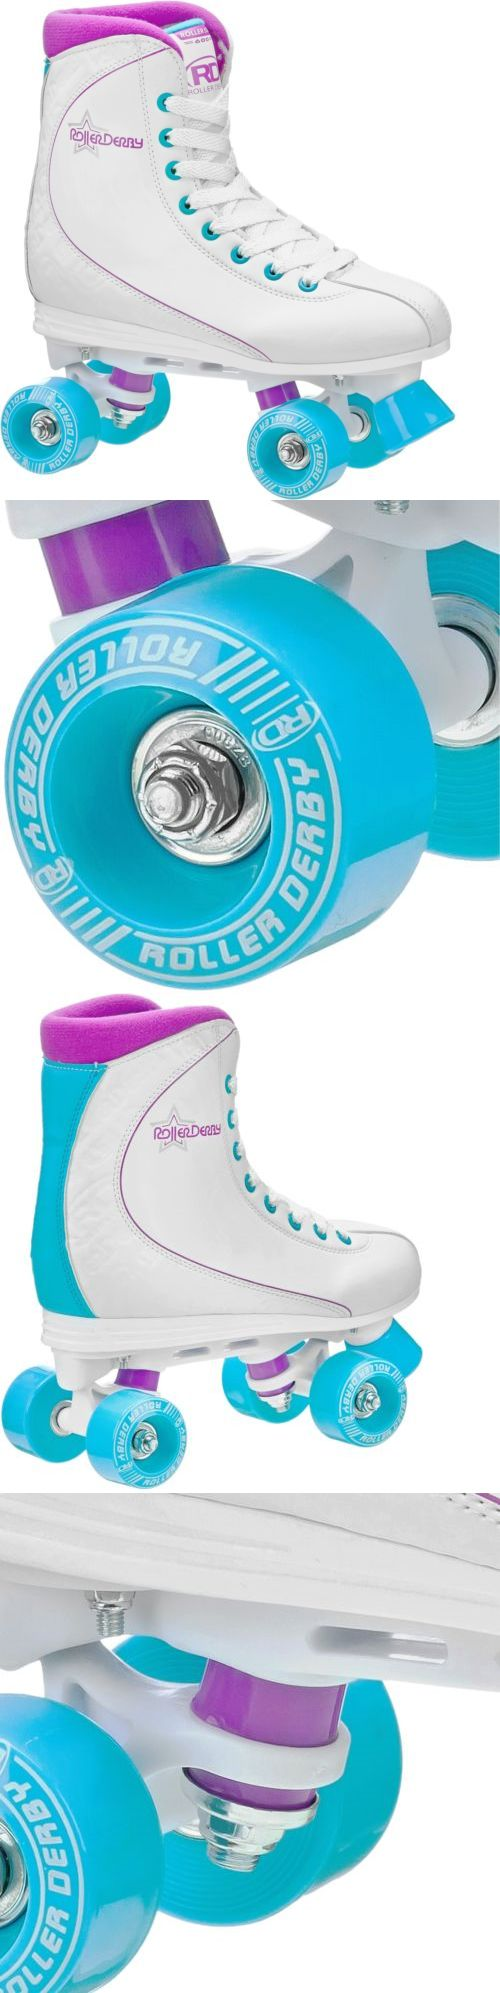 Dukes roller shoes - Women 16261 Quad Roller Skates Women White Traditional High Top Recreational Fun Size 8 New